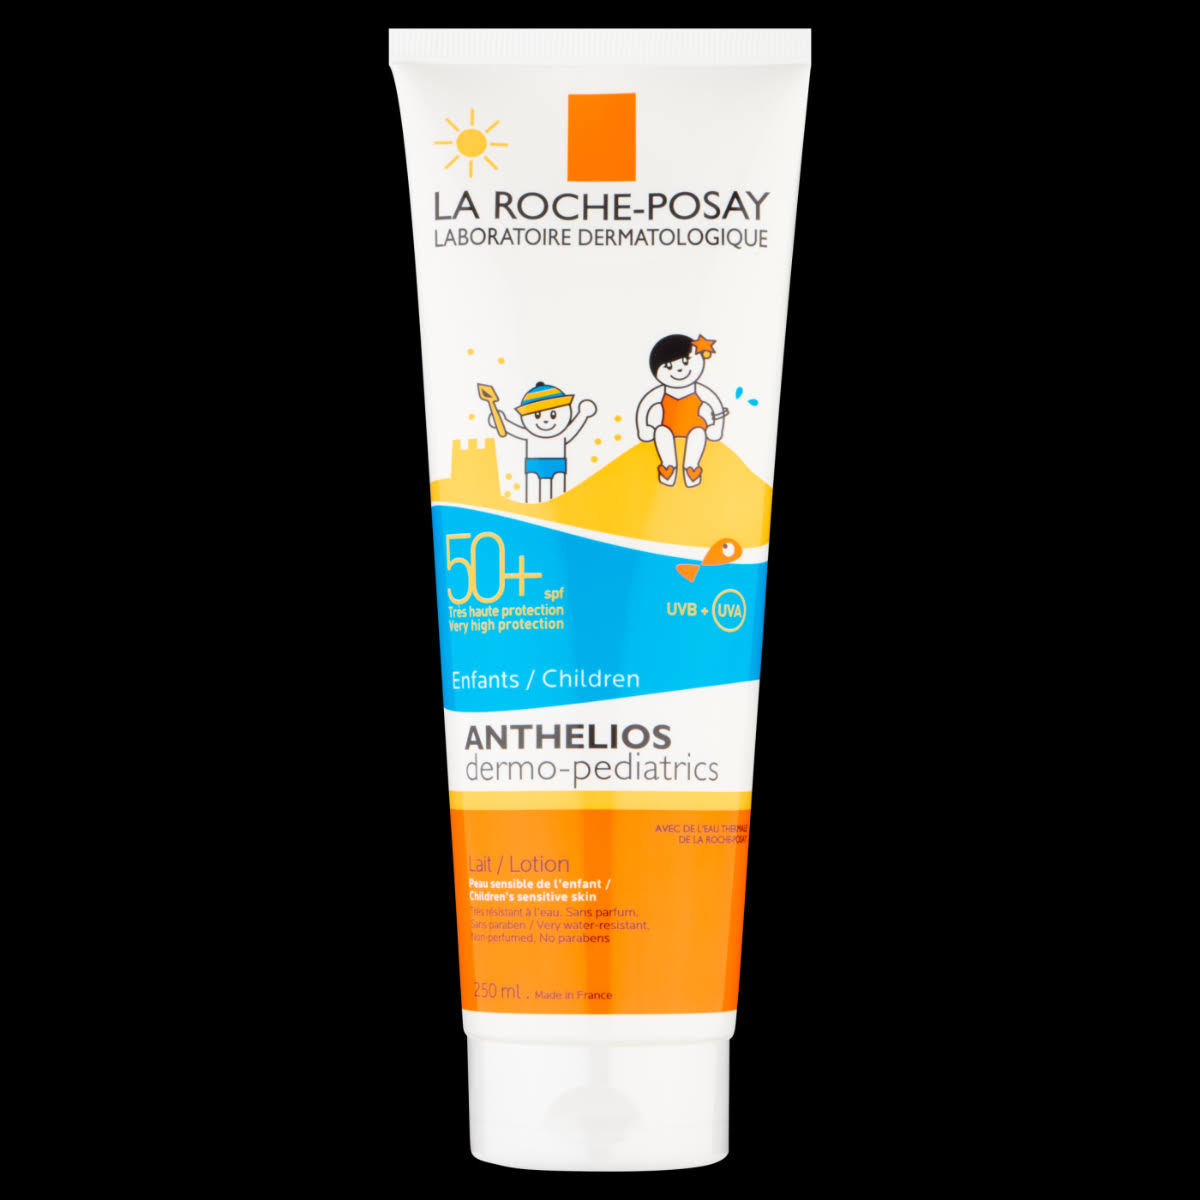 La Roche-Posay Anthelios Kids Body Milk - SPF50, 250ml